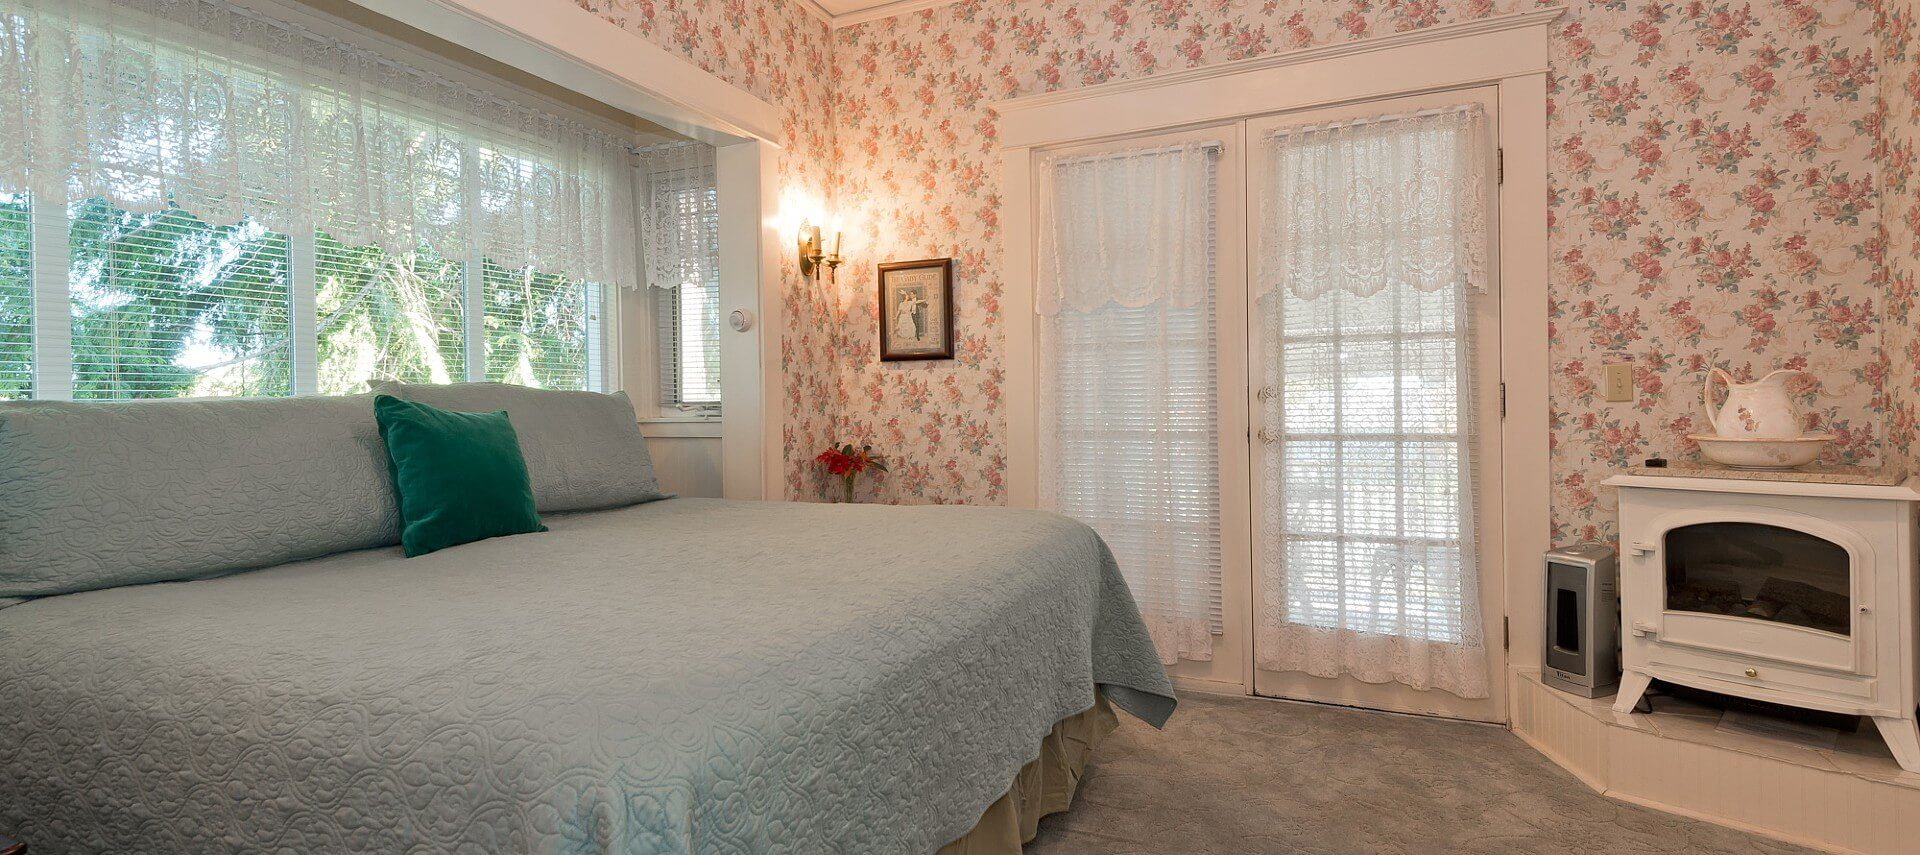 Elegant guest room with king bed, white electric fireplace, bright windows and French doors with lace curtains